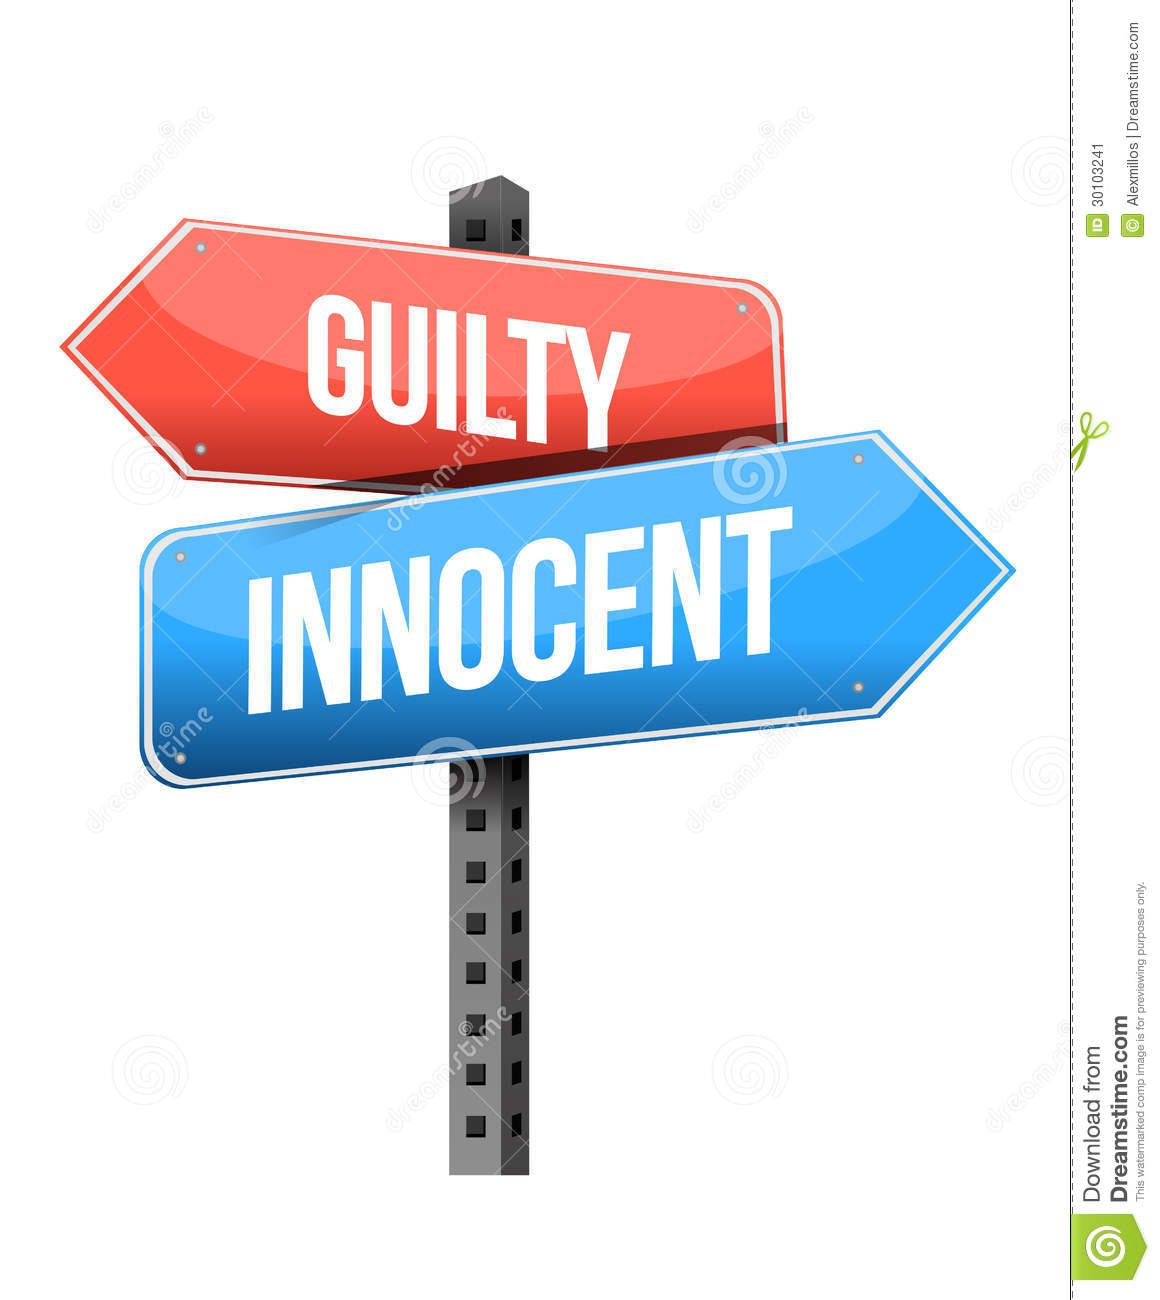 A guilty or innocent way a